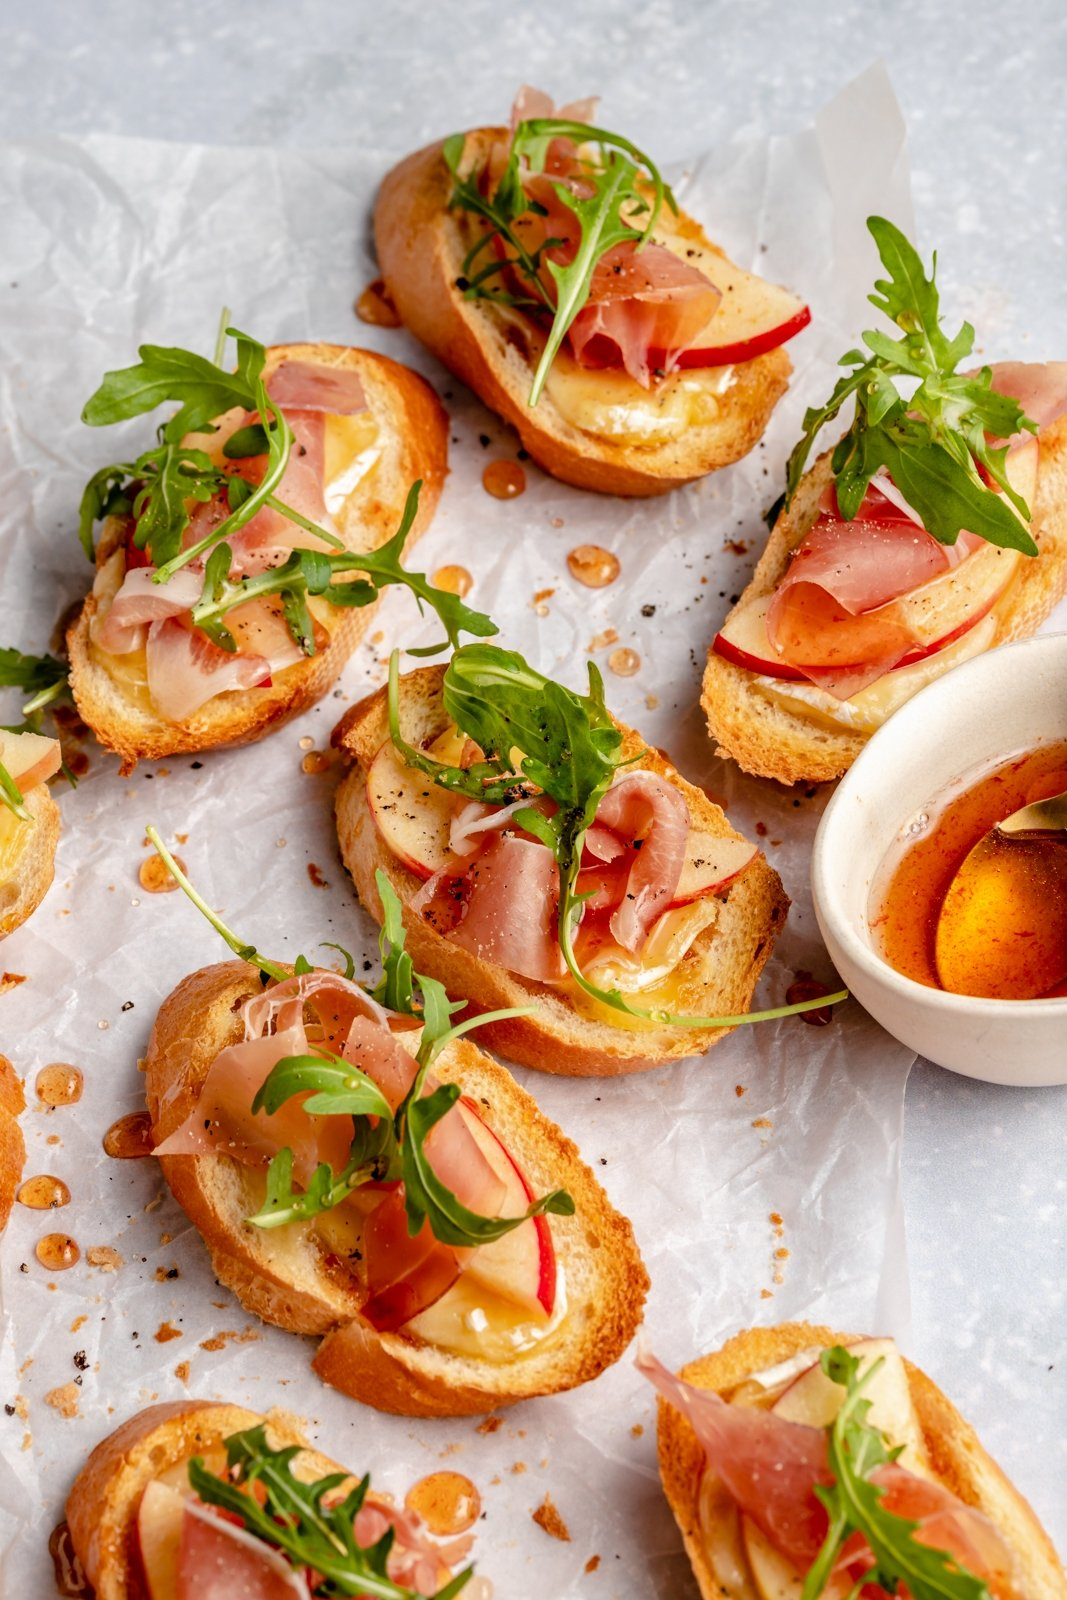 apple and brie crostini with prosciutto and arugula on parchment paper